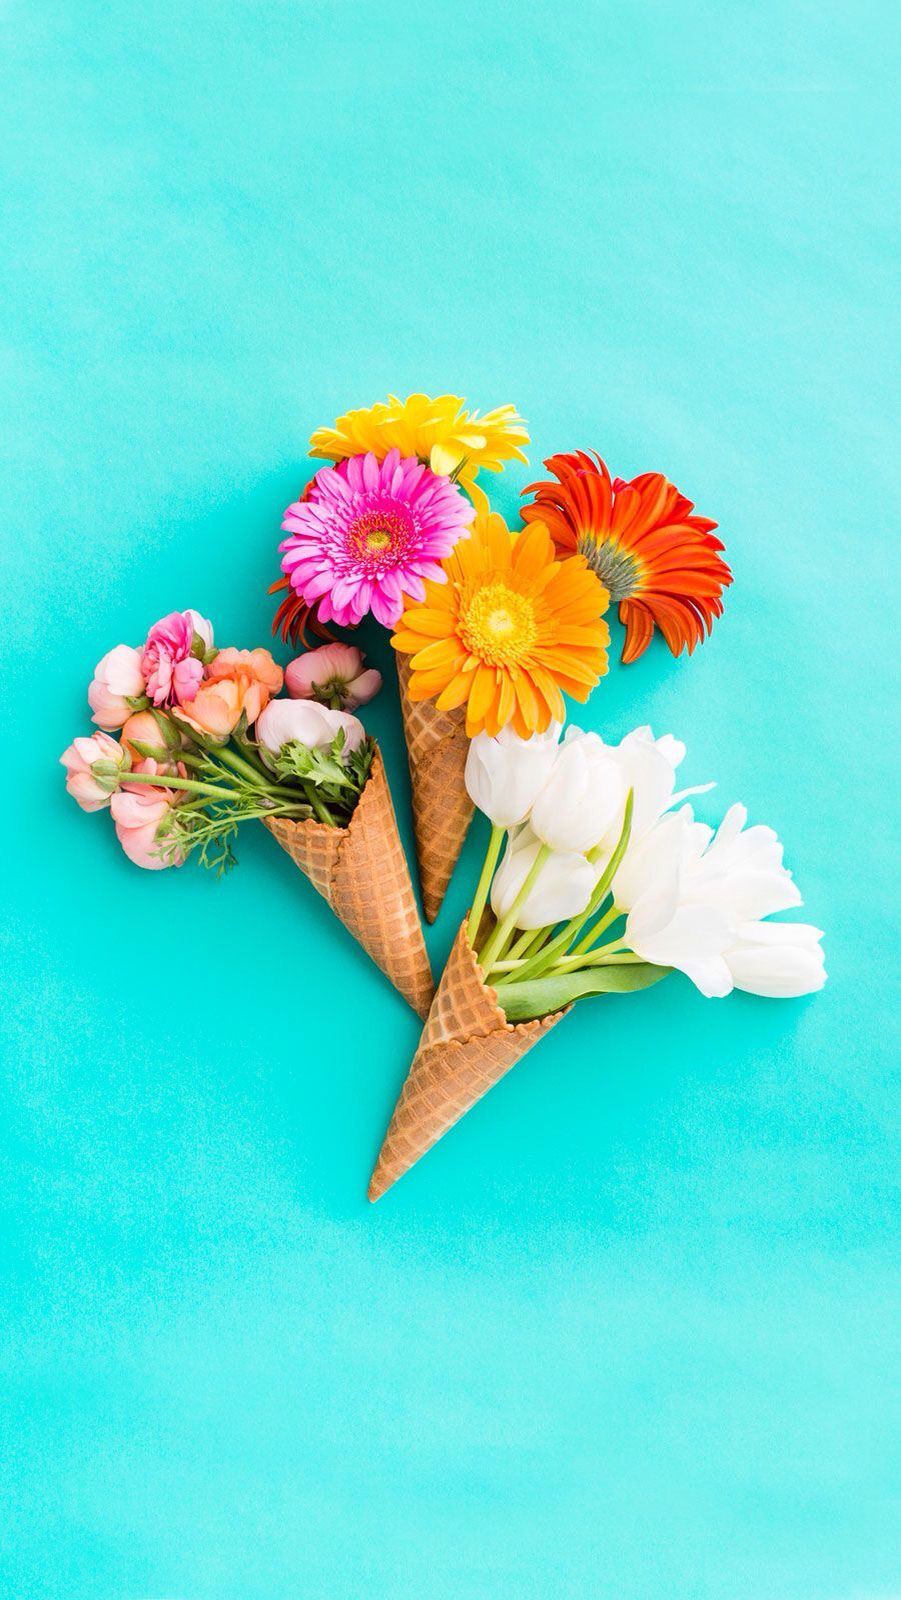 Bunch of Floral Ice Cream Cones Spring wallpaper, Spring